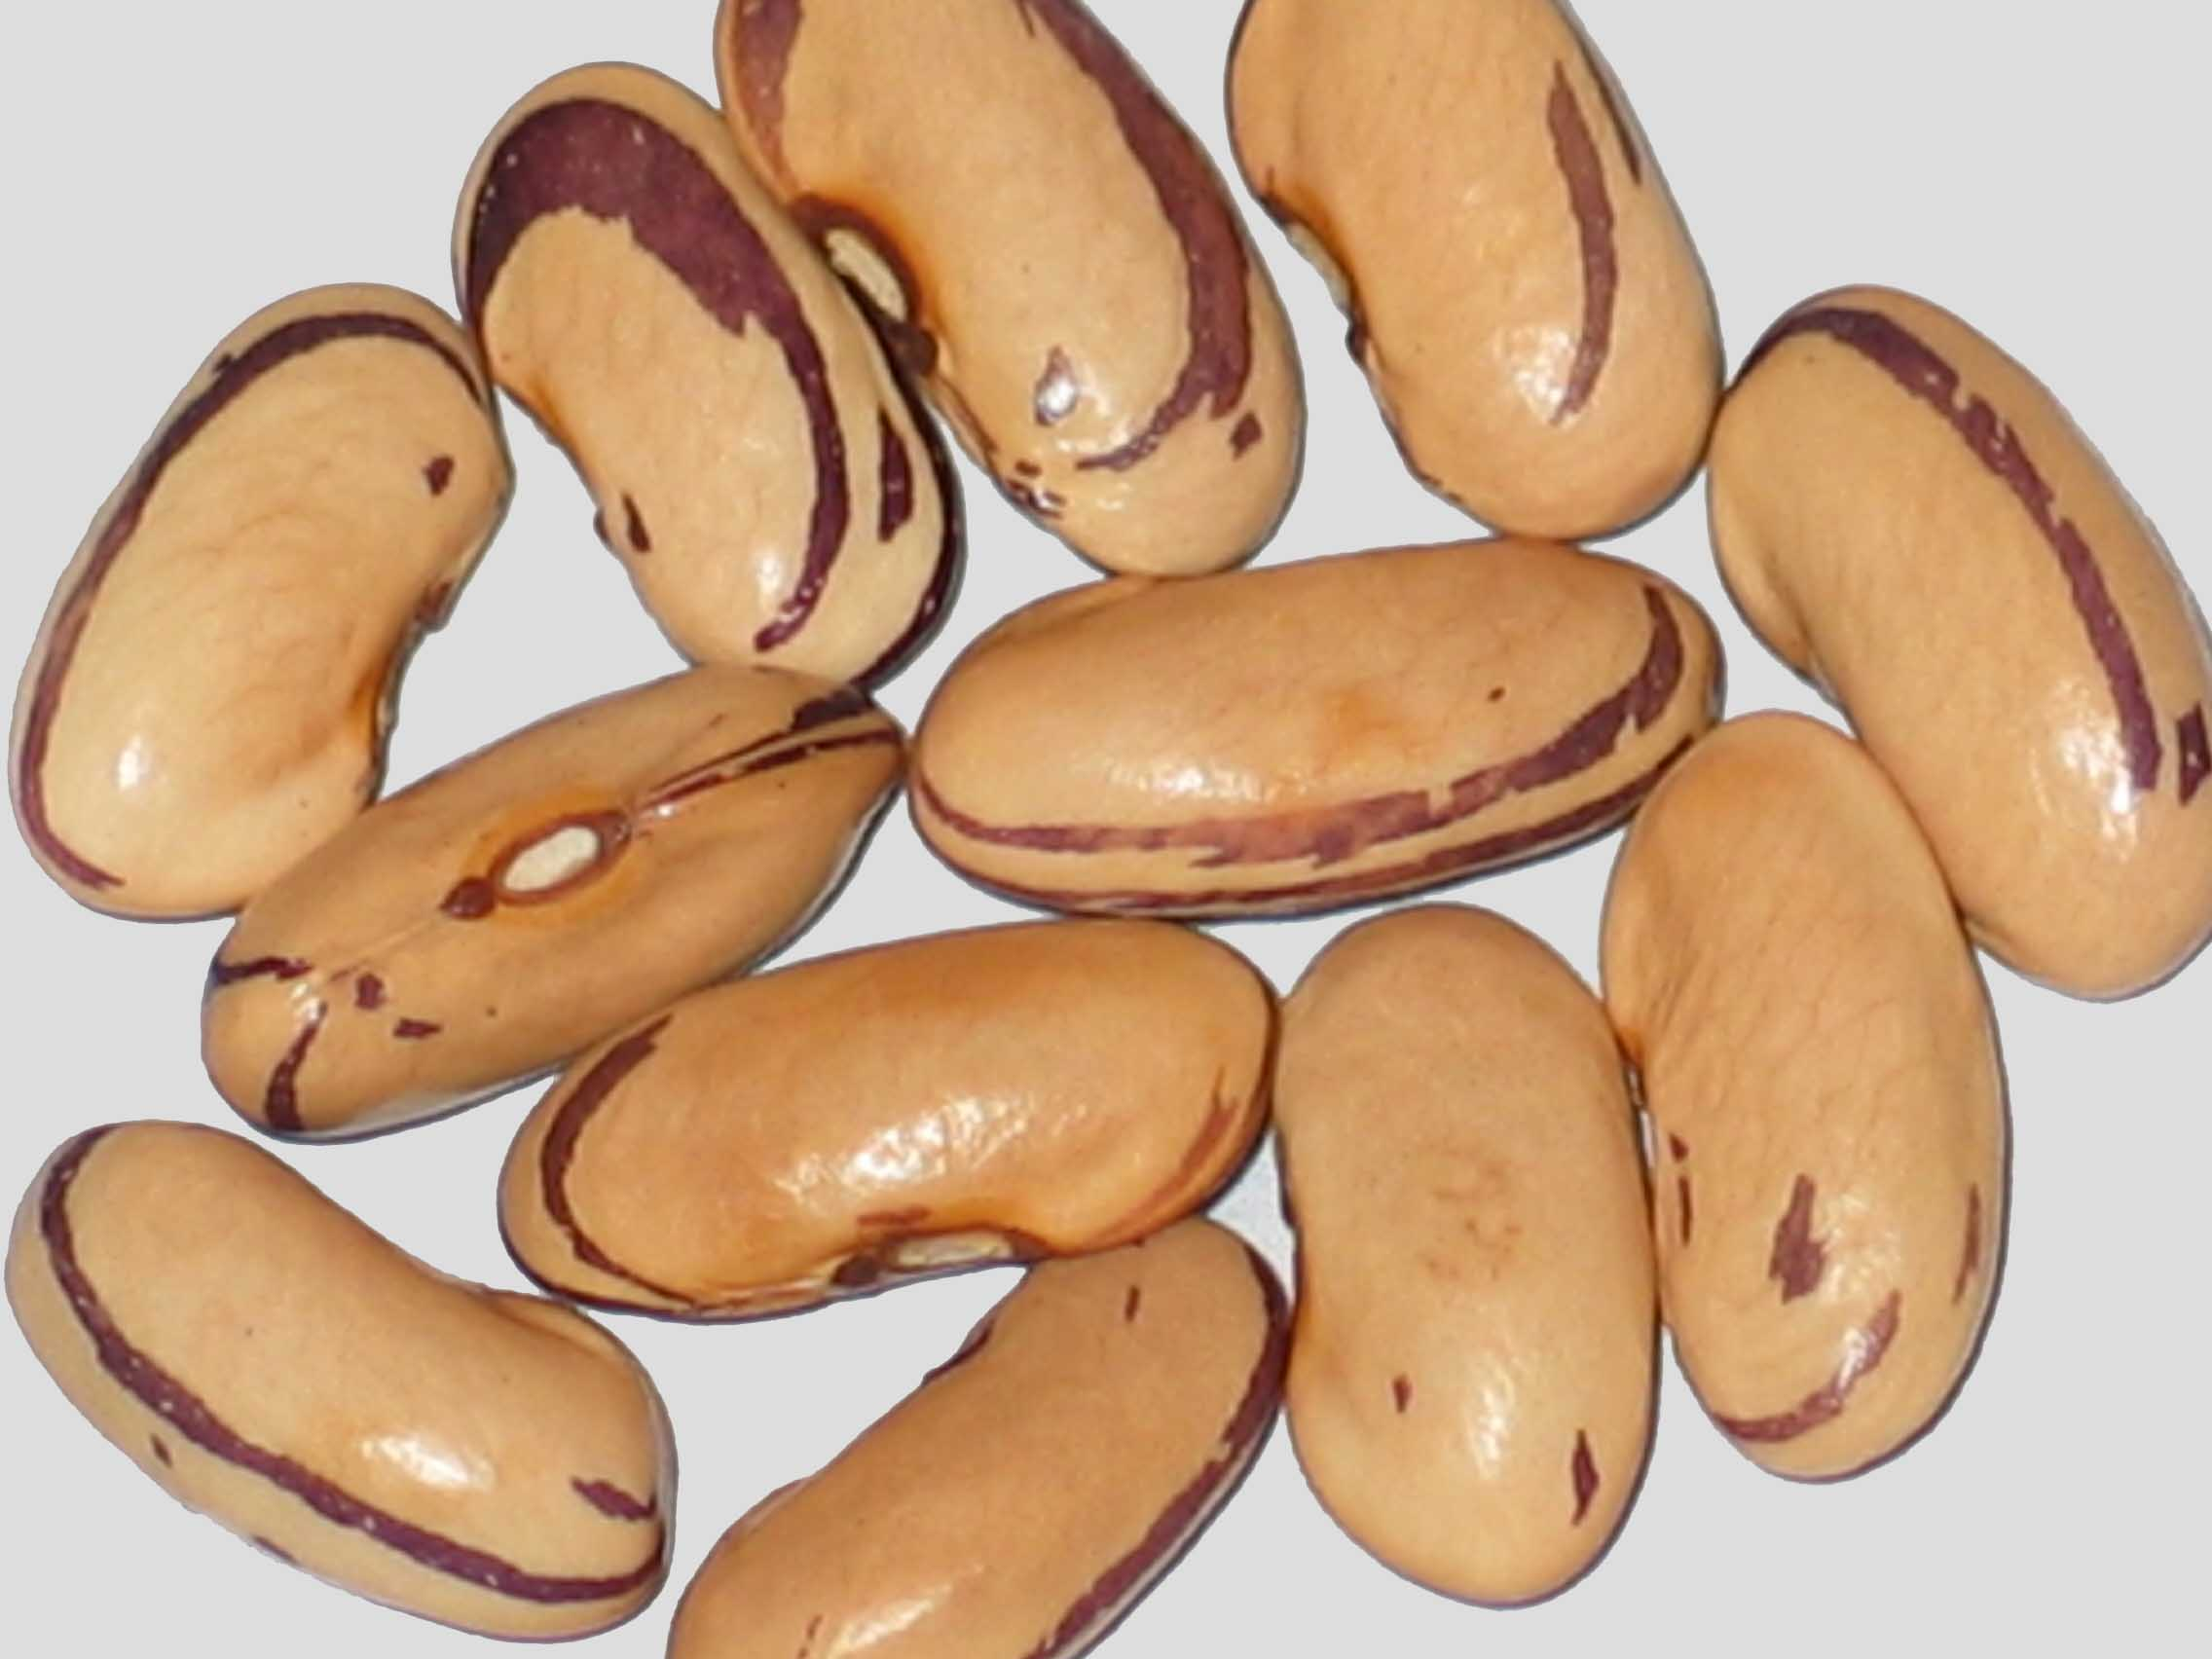 image of Sycamore Mascara beans